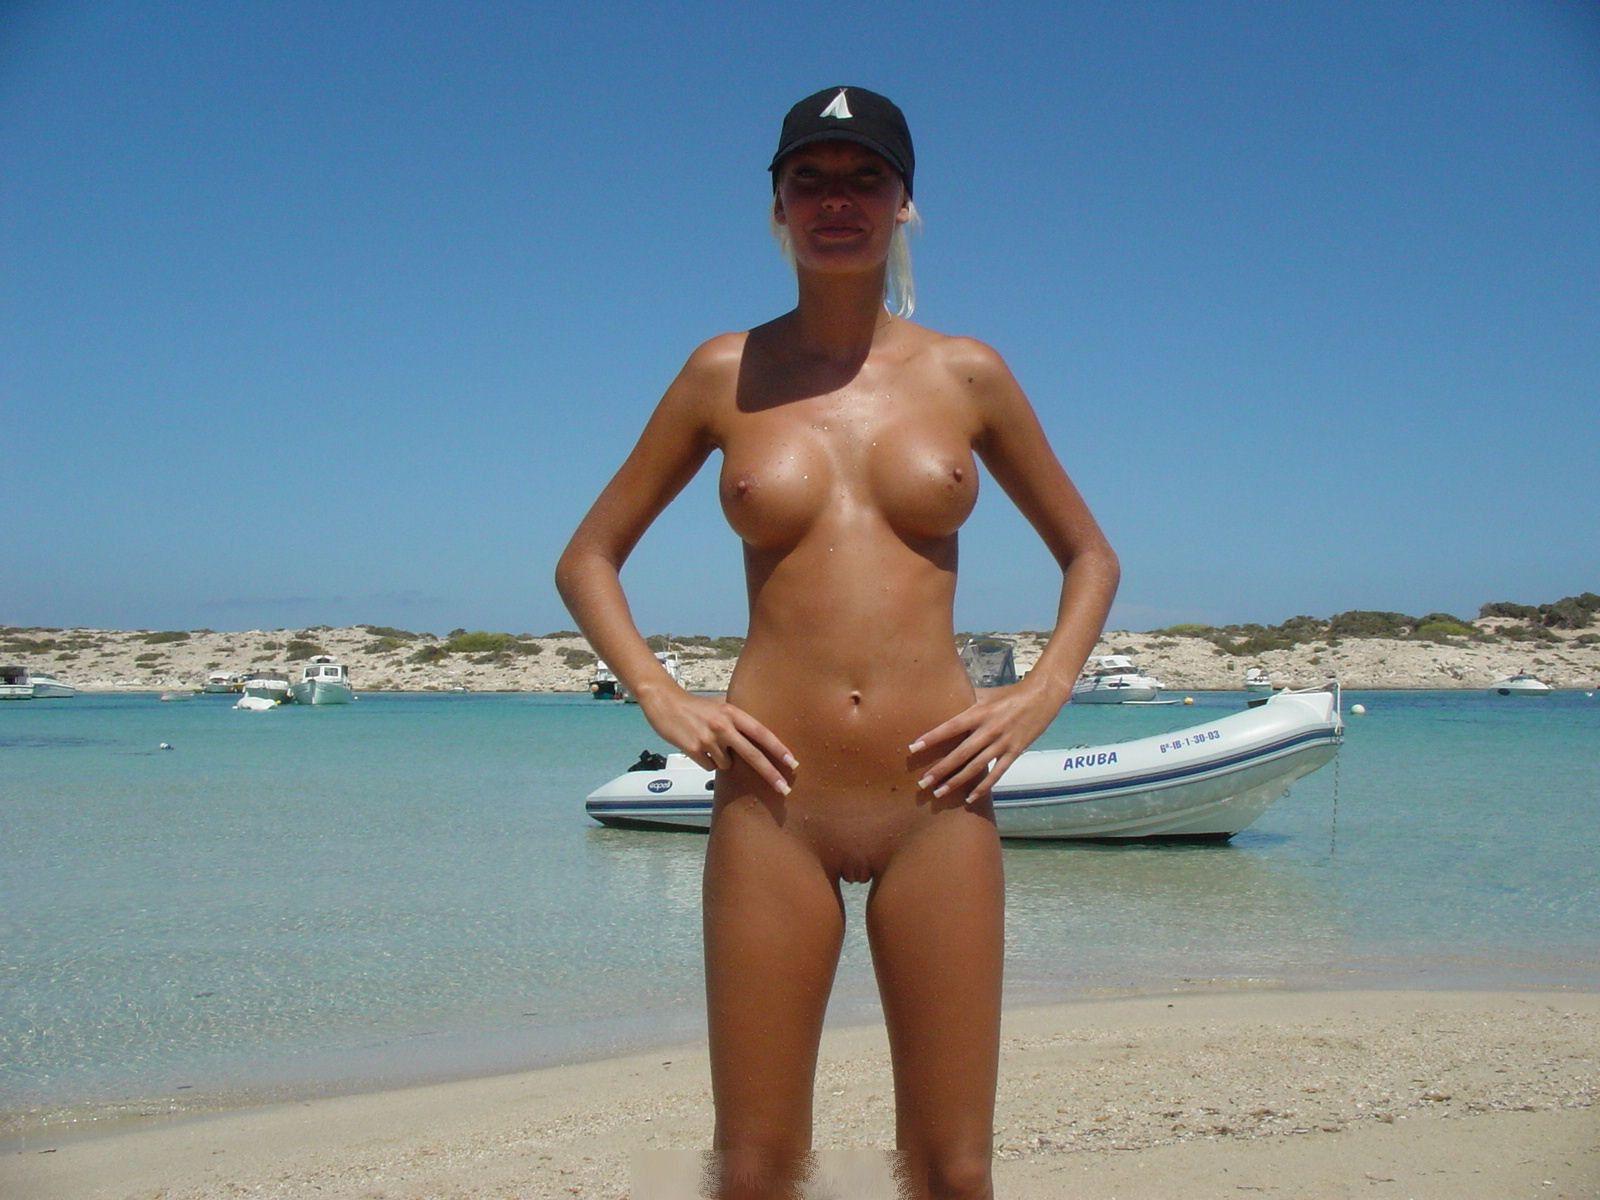 Blonde Euro Chick Butt Naked On Beach In Aruba